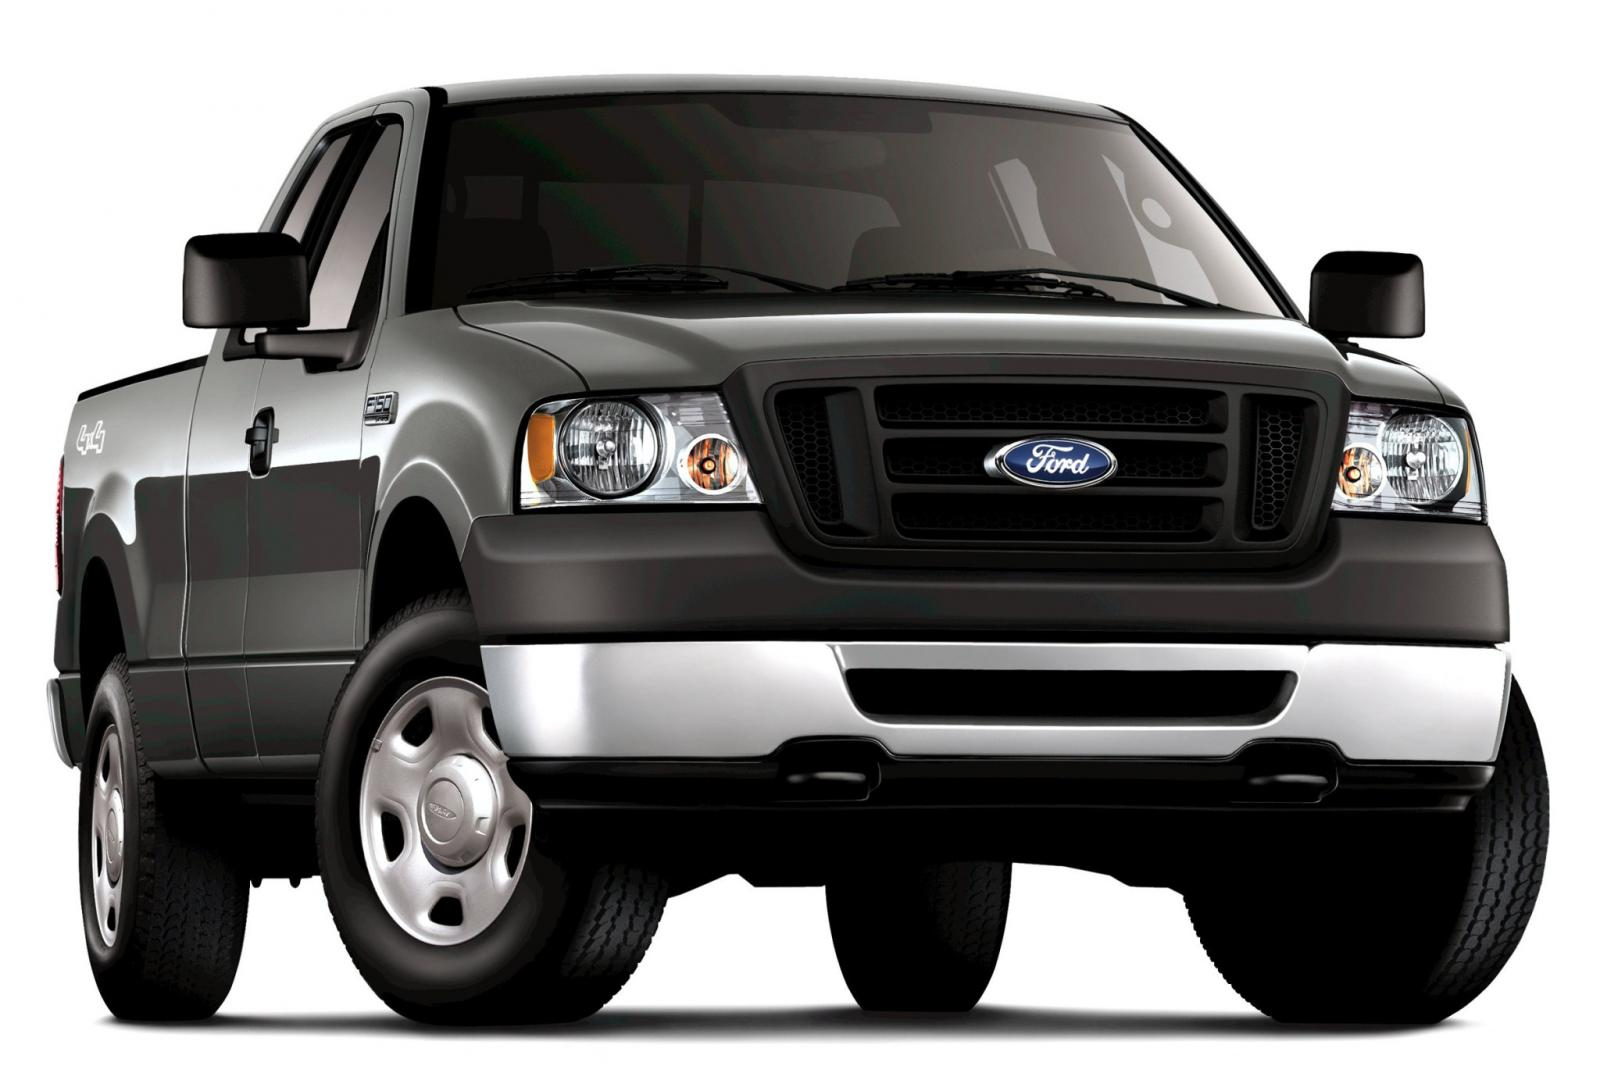 2007 ford f 150 information and photos zombiedrive. Black Bedroom Furniture Sets. Home Design Ideas